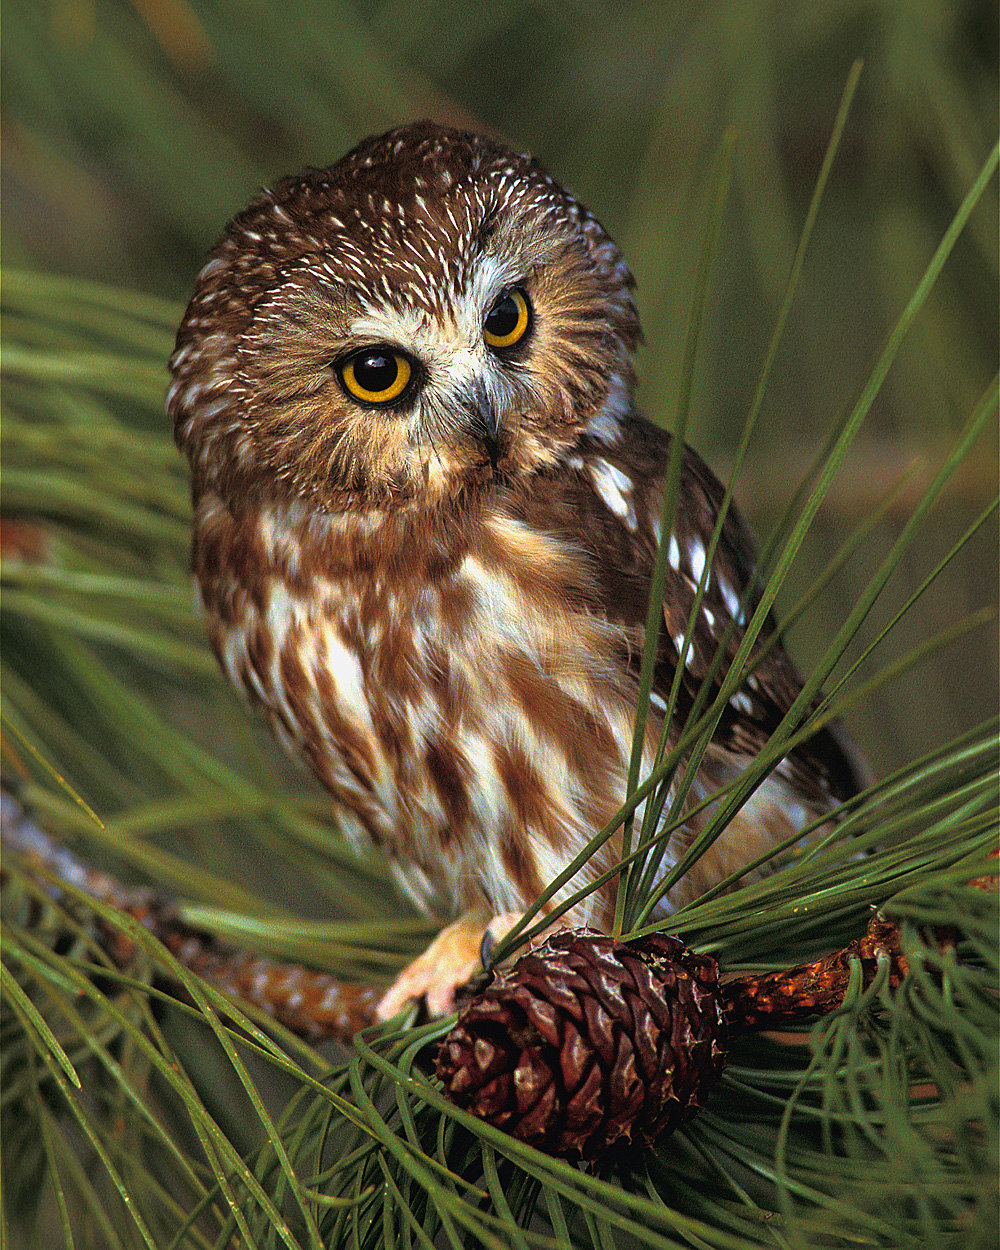 We'll listen for saw whet owls and barred owls.